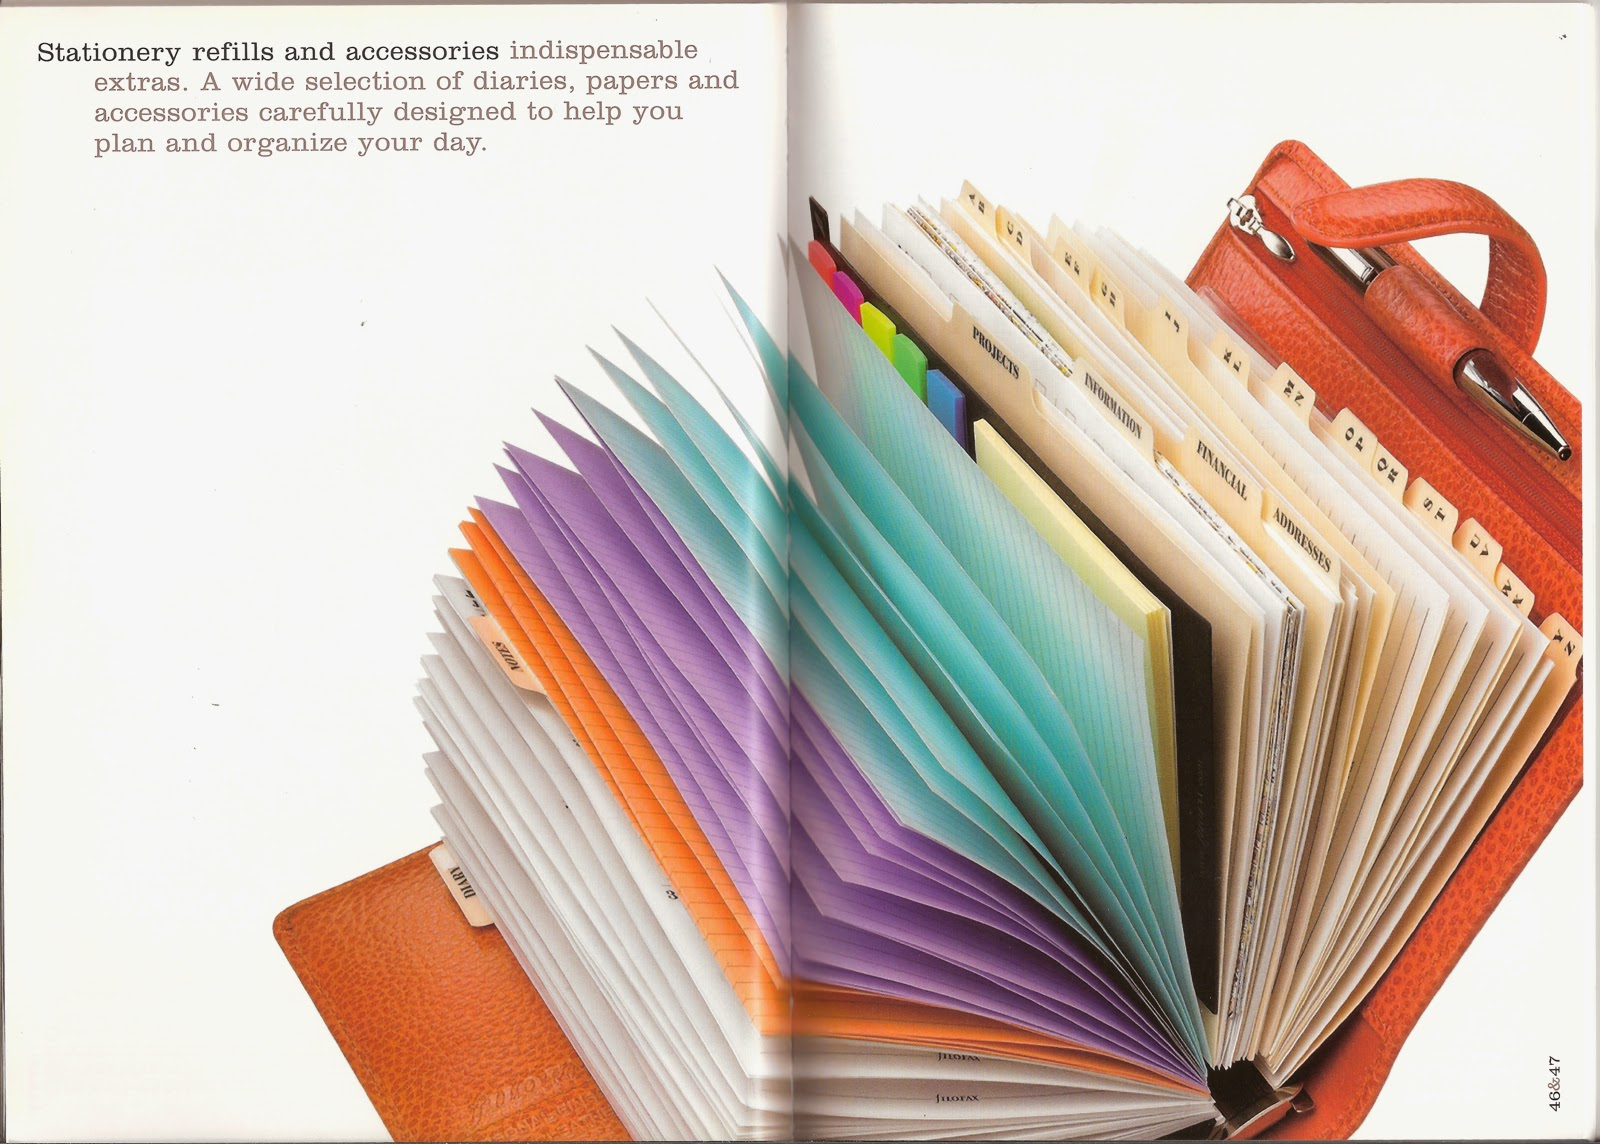 Need to get organised with a Filofax? Choose from a wide range of styles, sizes and colours, or buy your refills, inserts and Filofax accessories here.